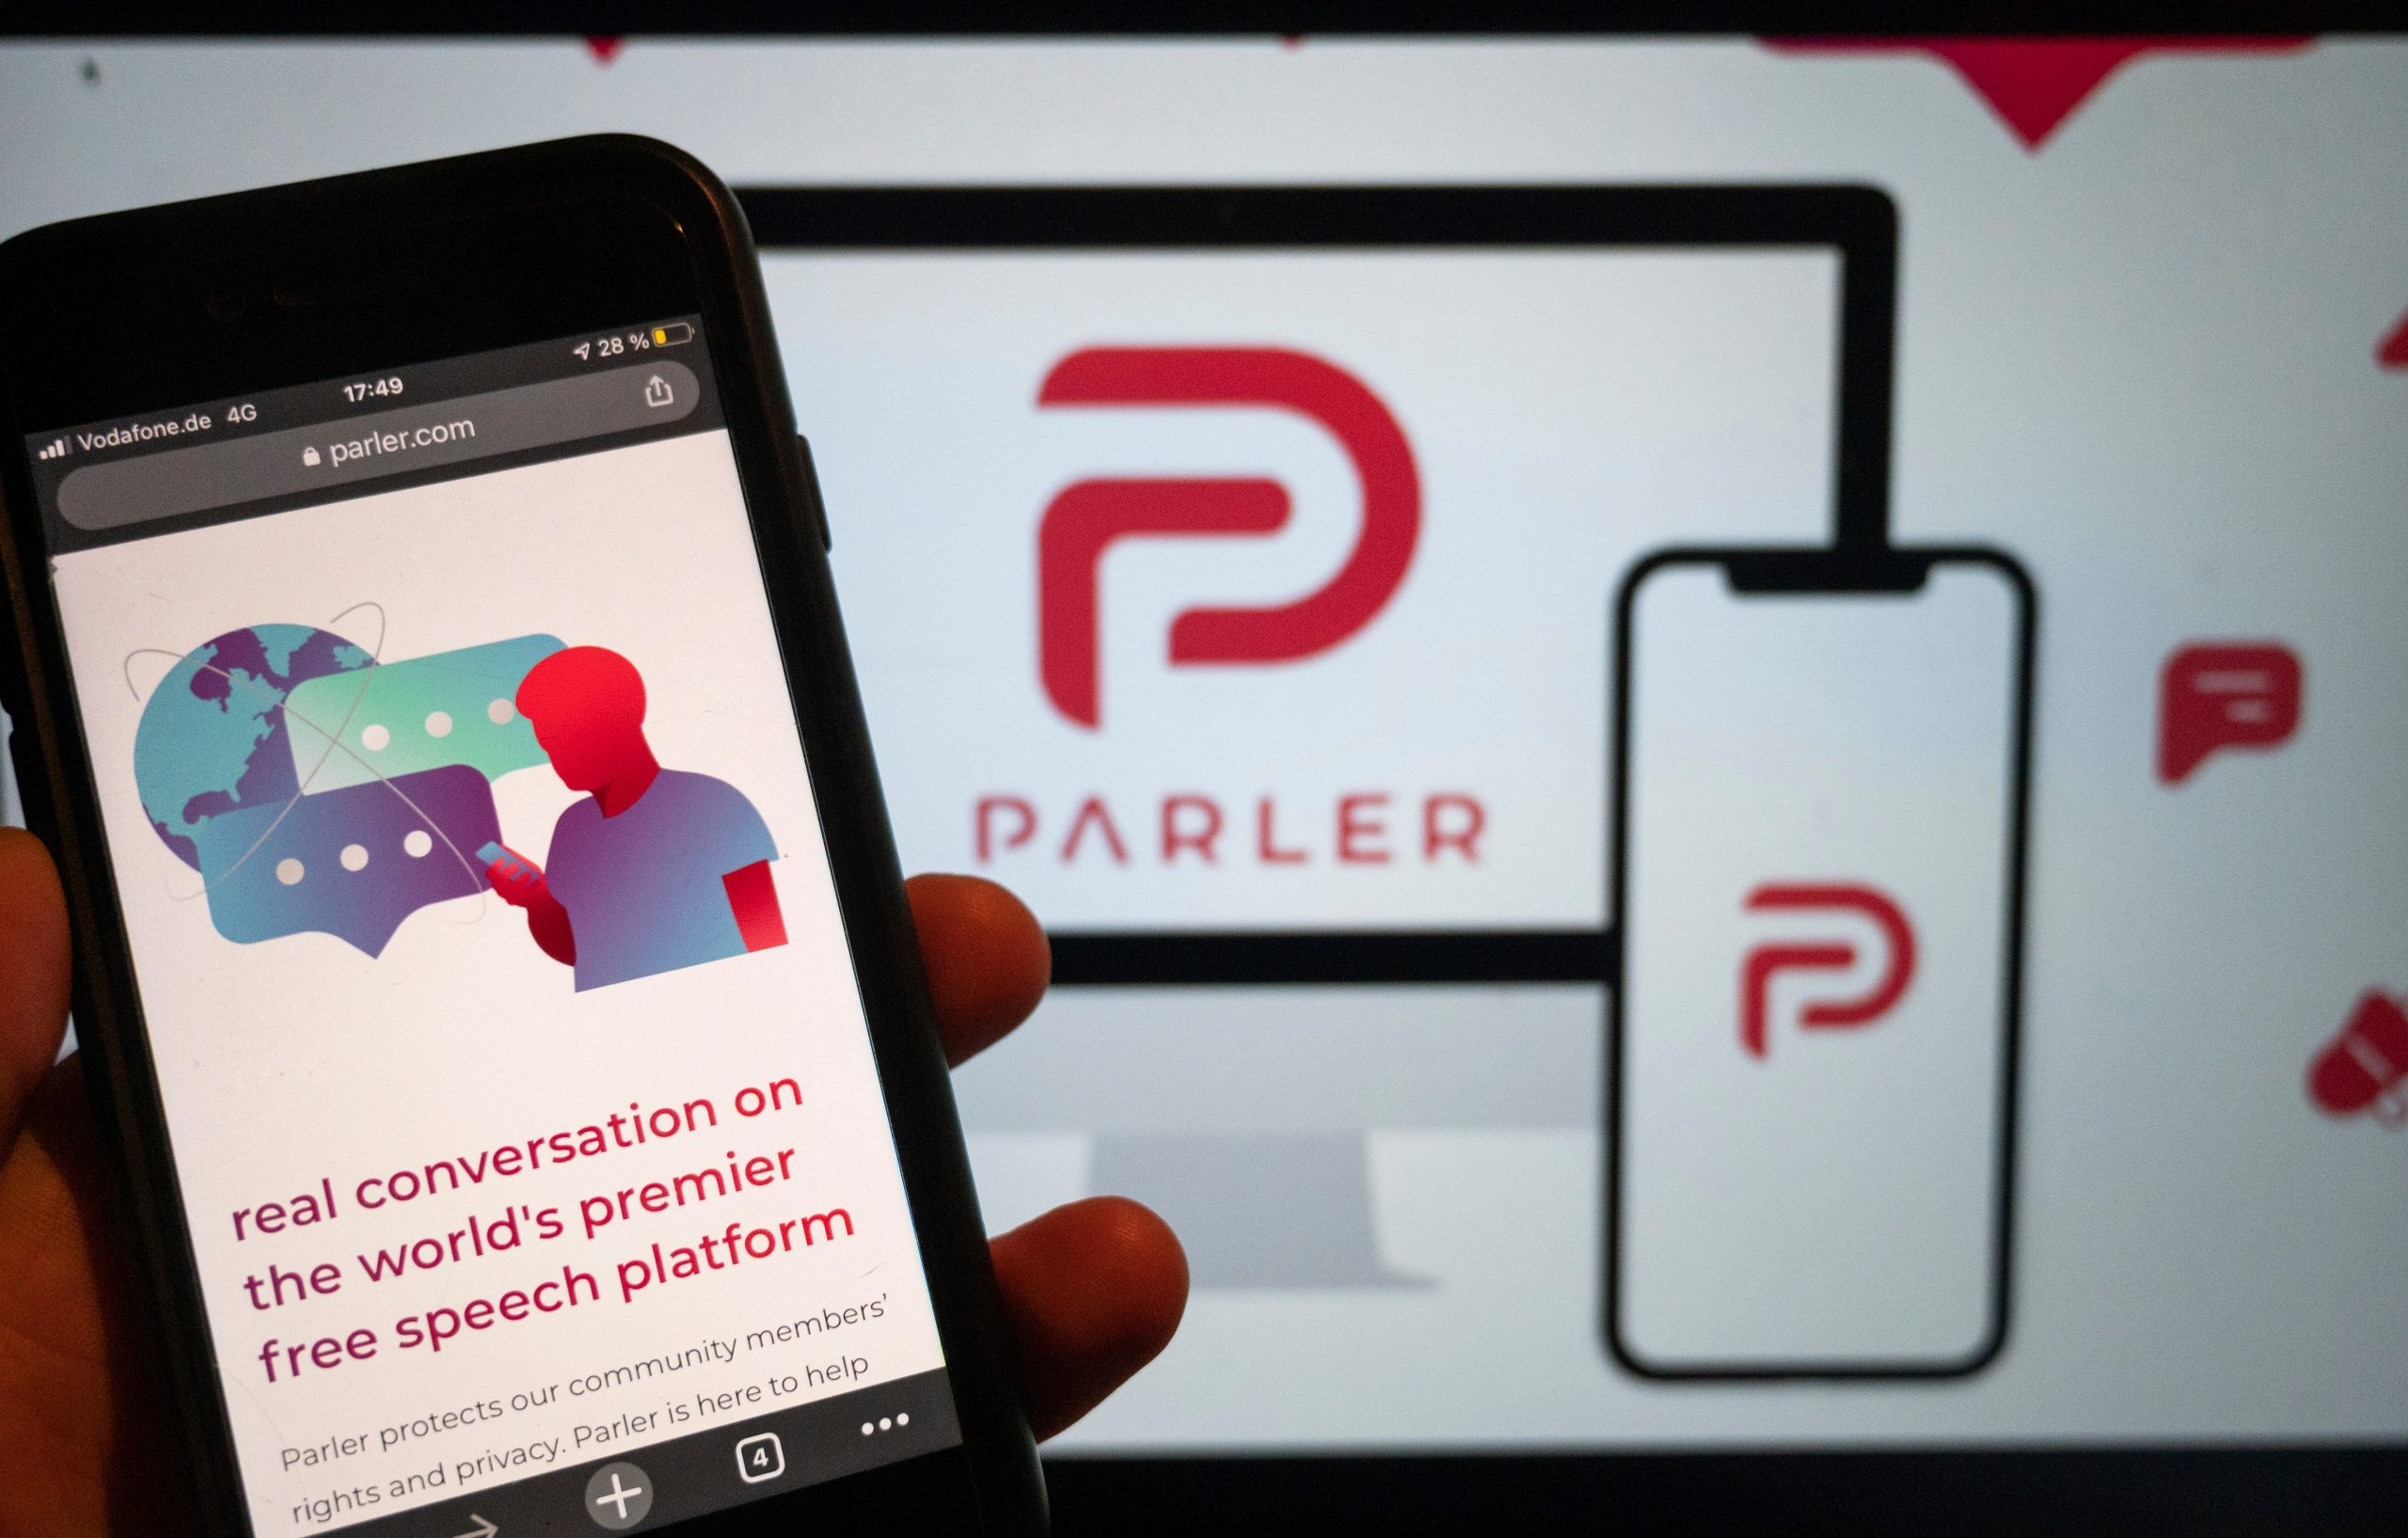 'These people just want to censor me,' fired Parler CEO says free speech platform is trying to muzzle him